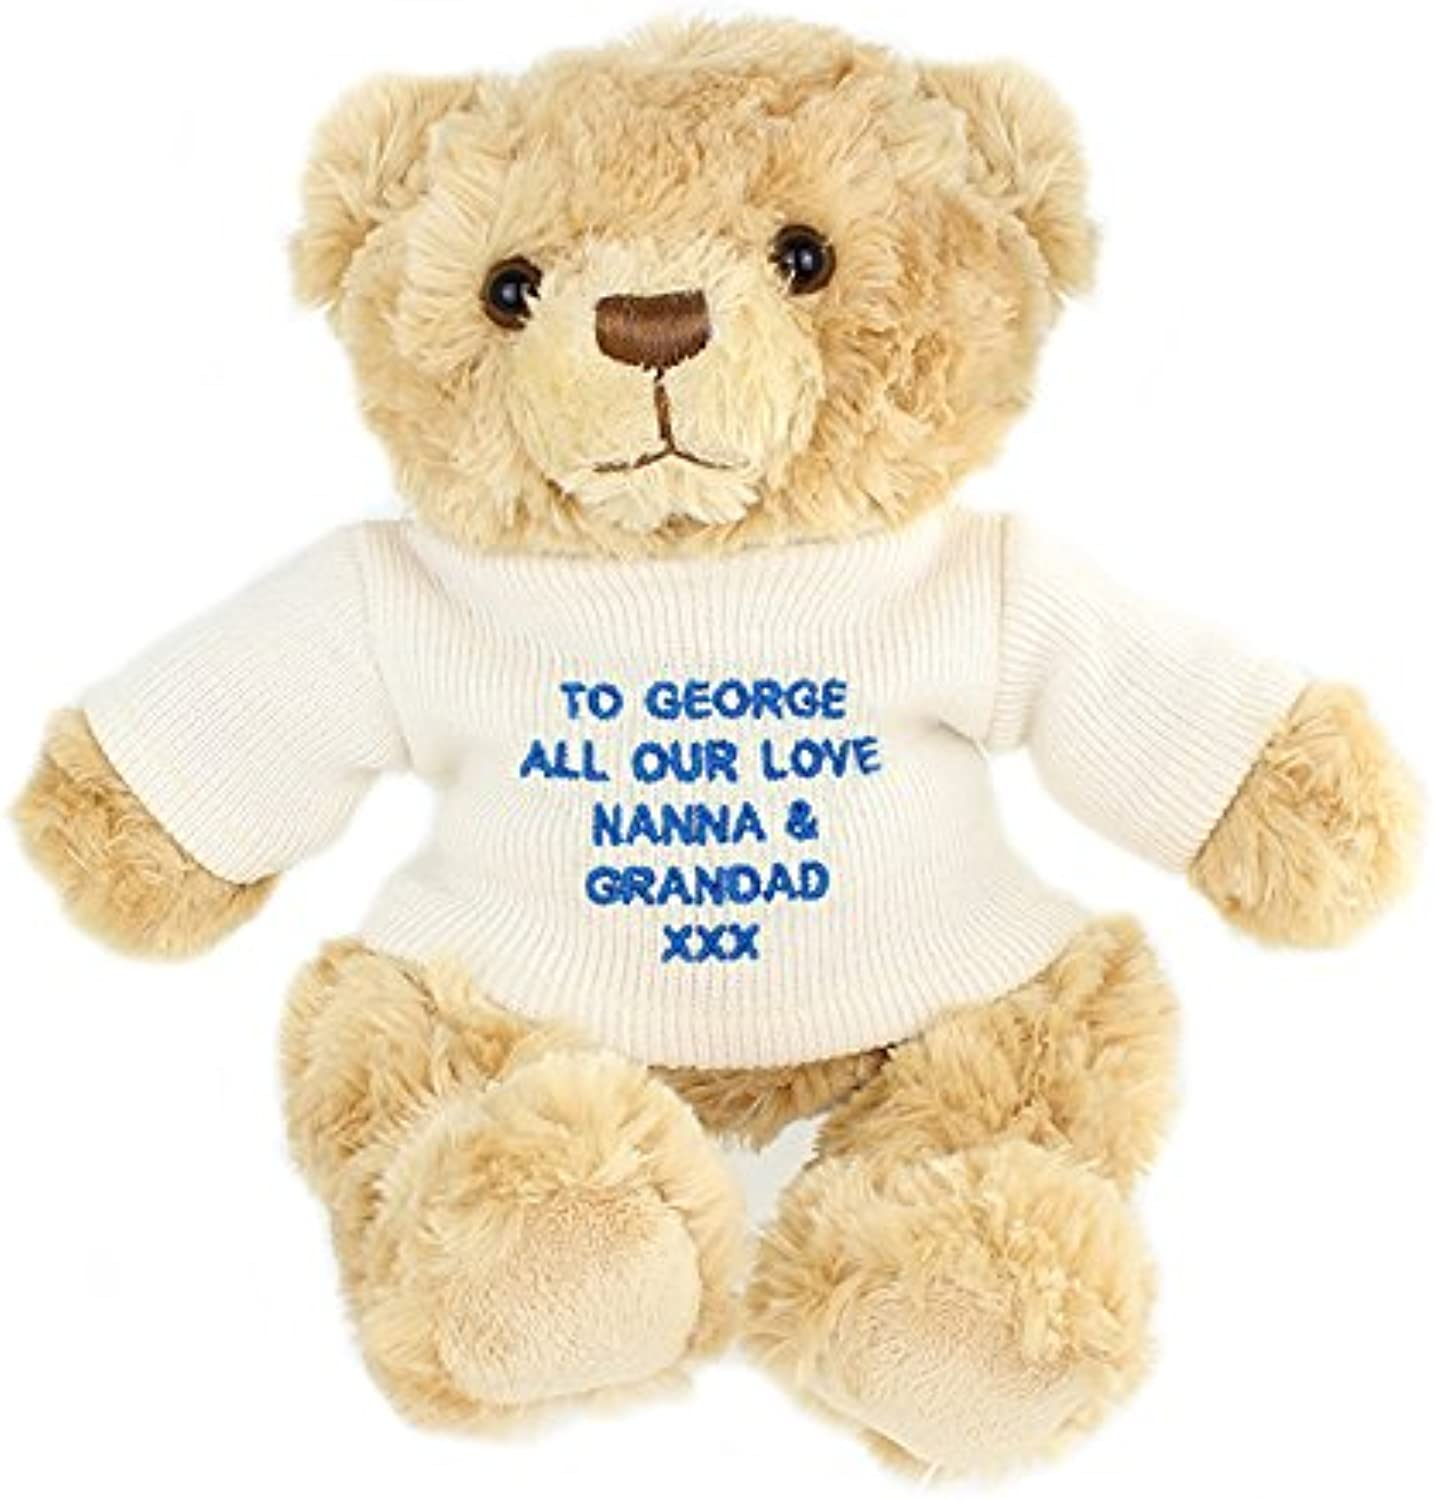 Boys Tatty Teddy message bear Blau Gifts, and, Cards Christmas, Gift, Idea Teddies Personalised B00J5I6RZA Sofortige Lieferung | Qualität zuerst